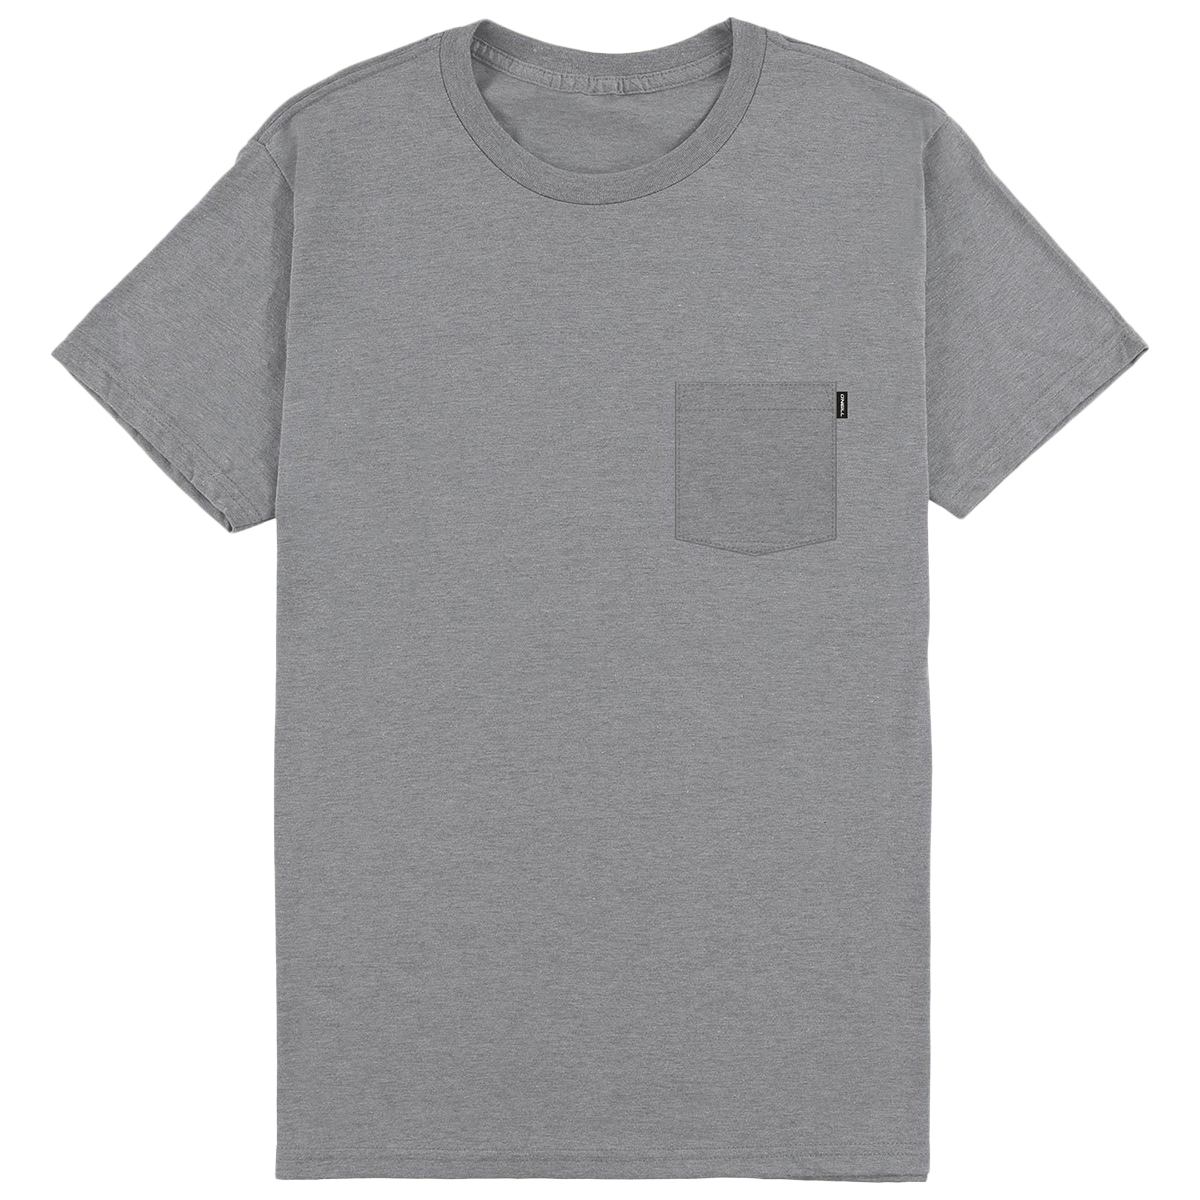 O'neill Men's Blank Modern Pocket Tee - Black, S